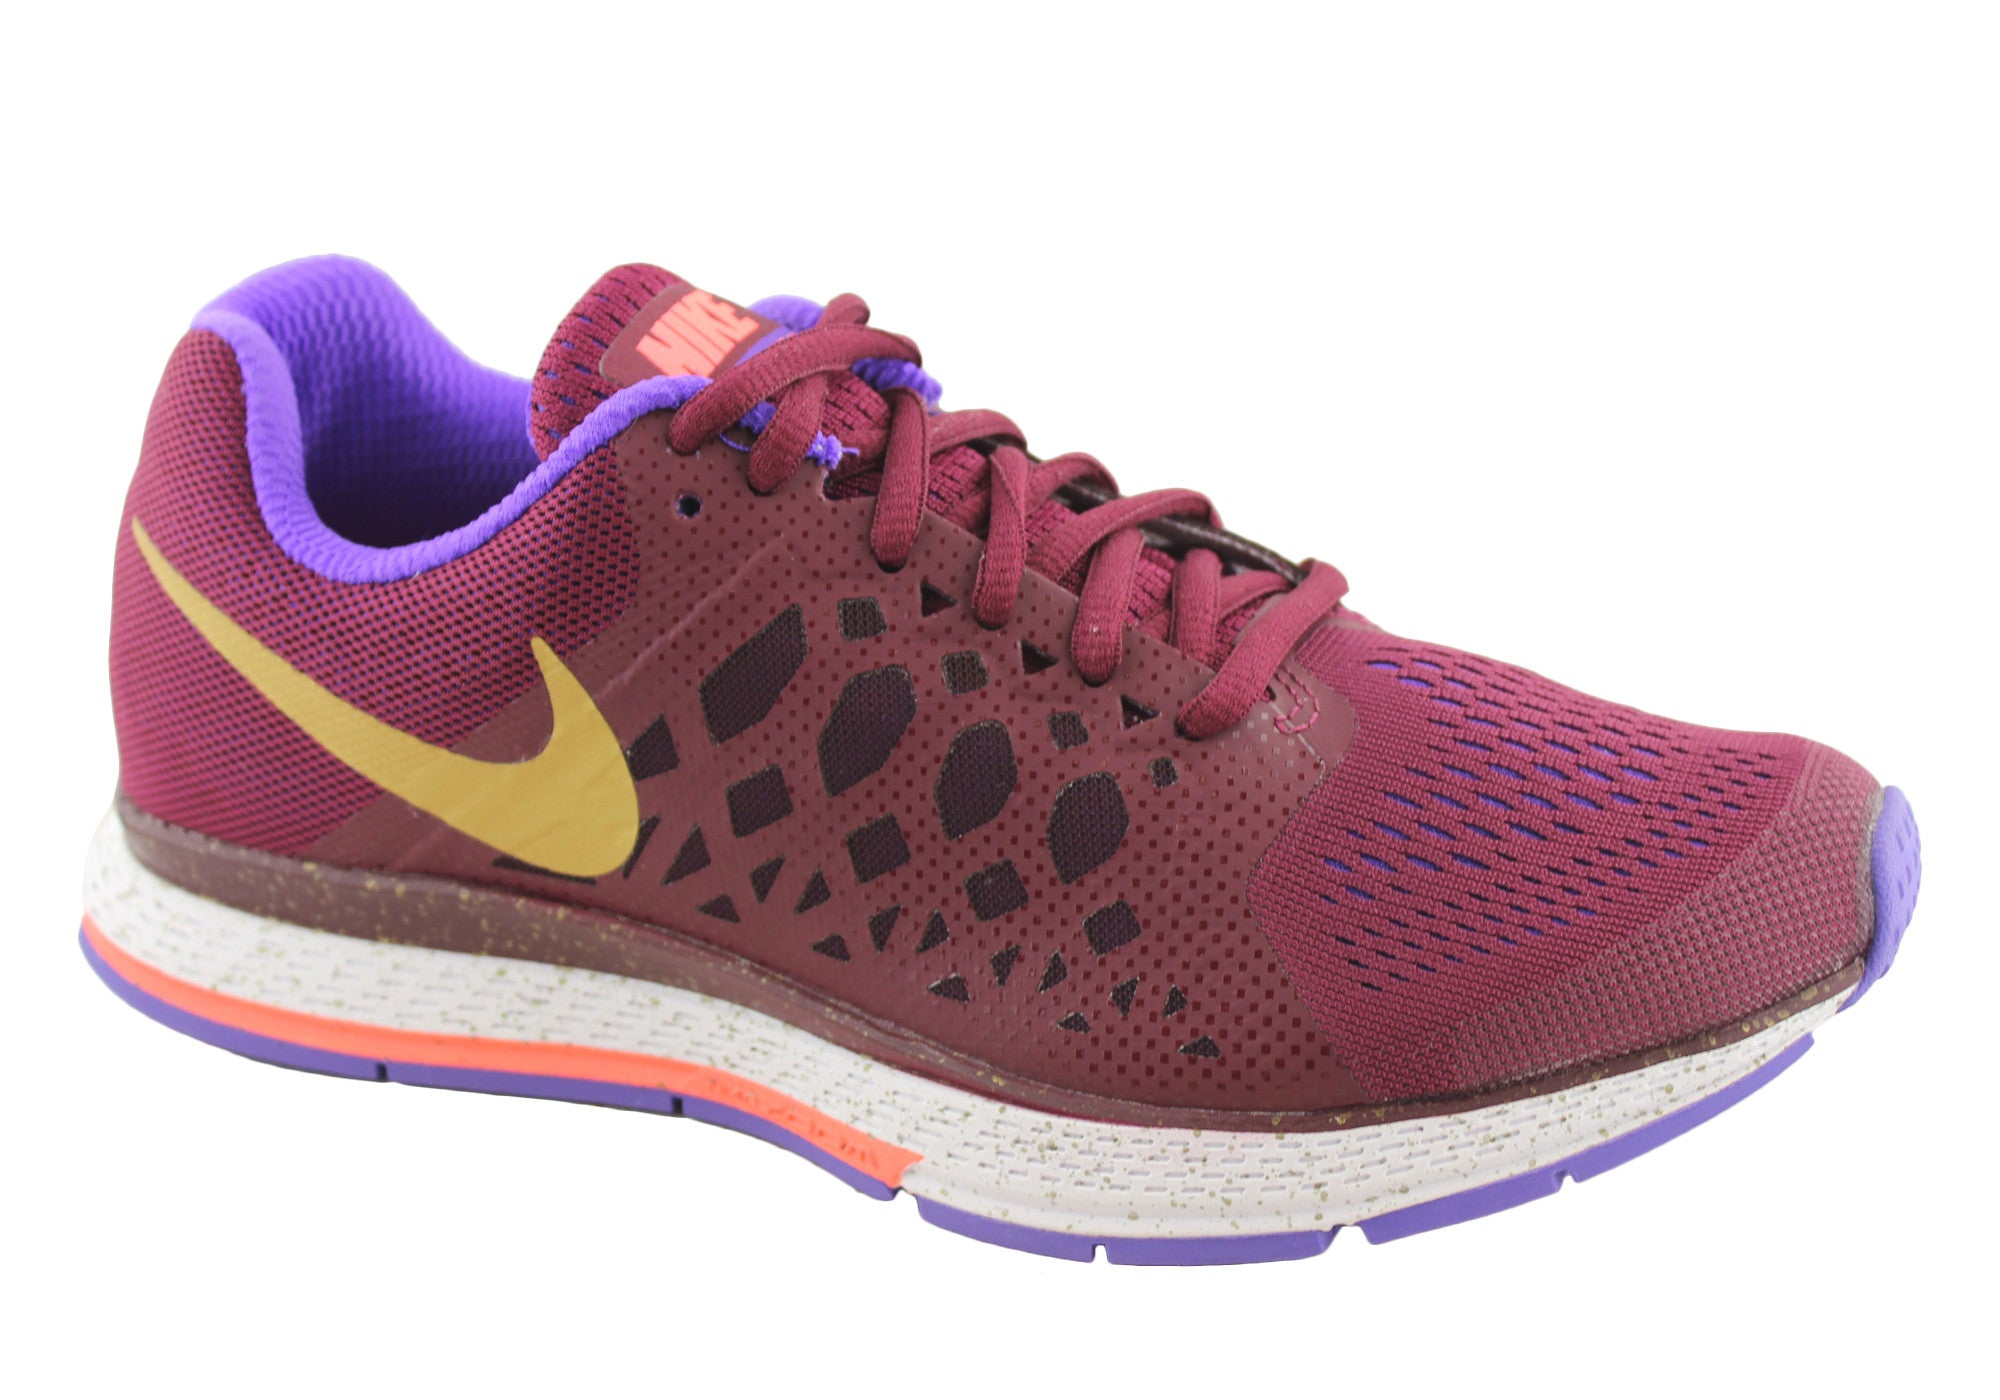 Nike Womens Zoom Pegasus 31 QS Running Shoes